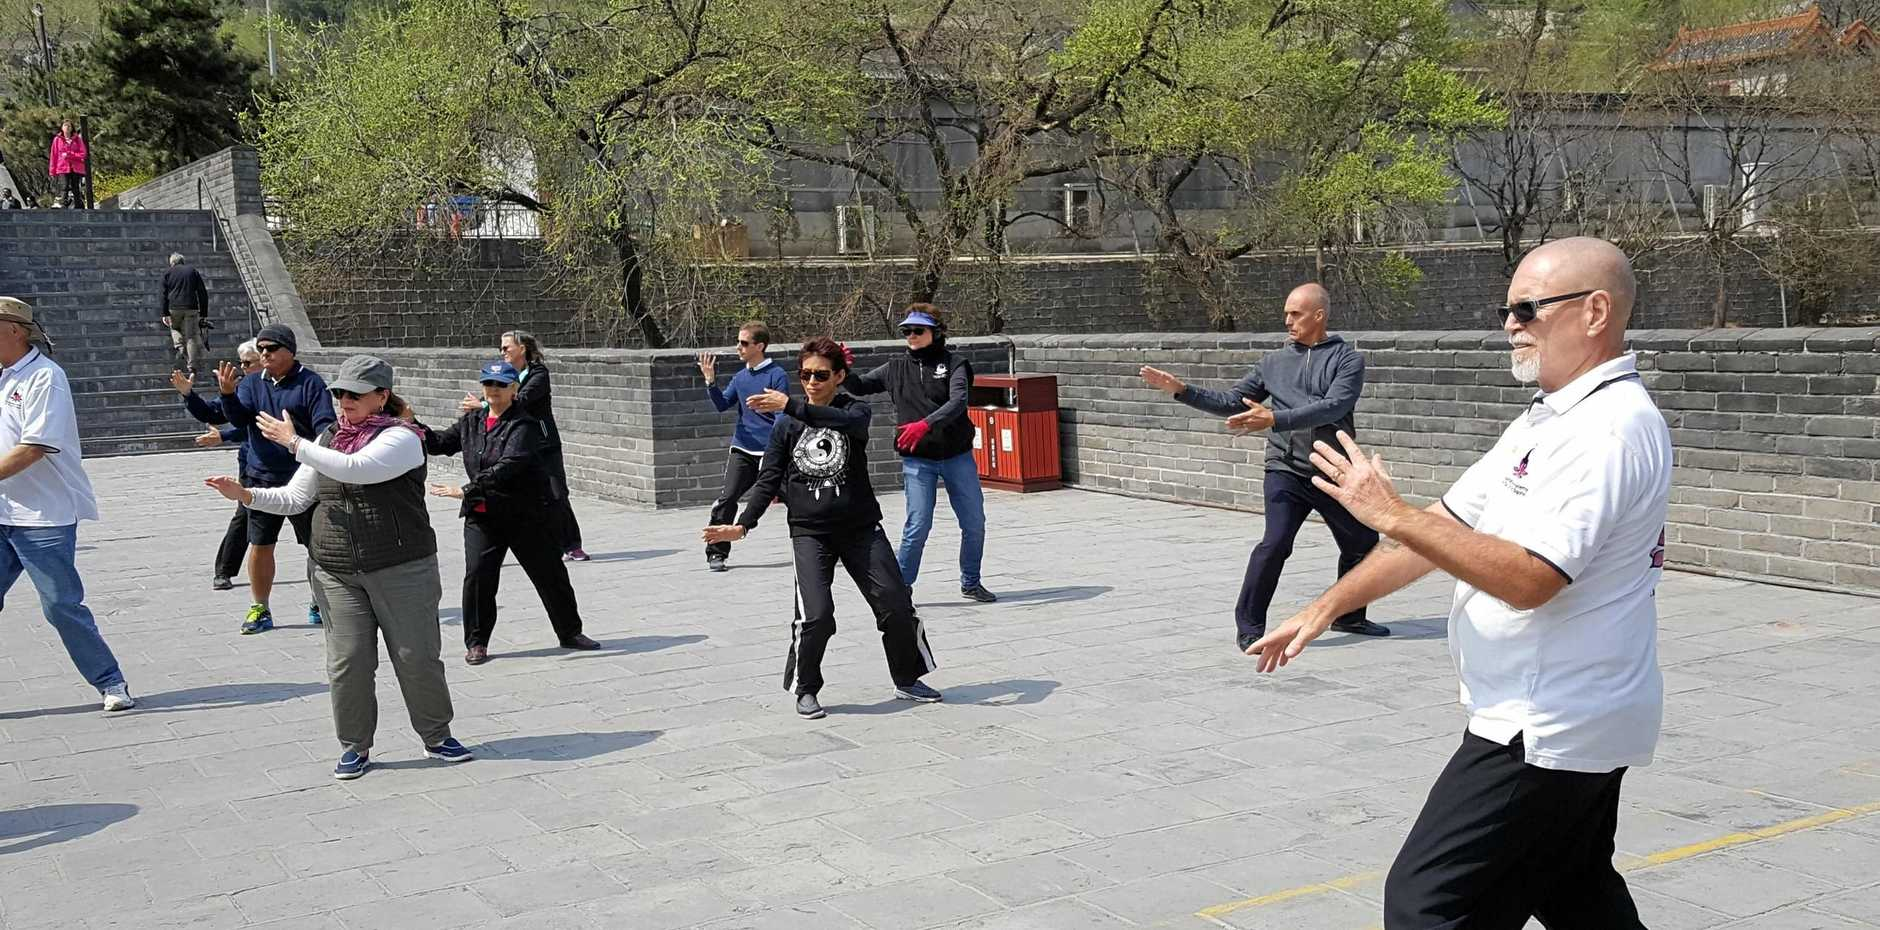 NEW LIFE: David Ross had the opportunity to teach Tai Chi at the Great Wall of China ... another life-changing experience.